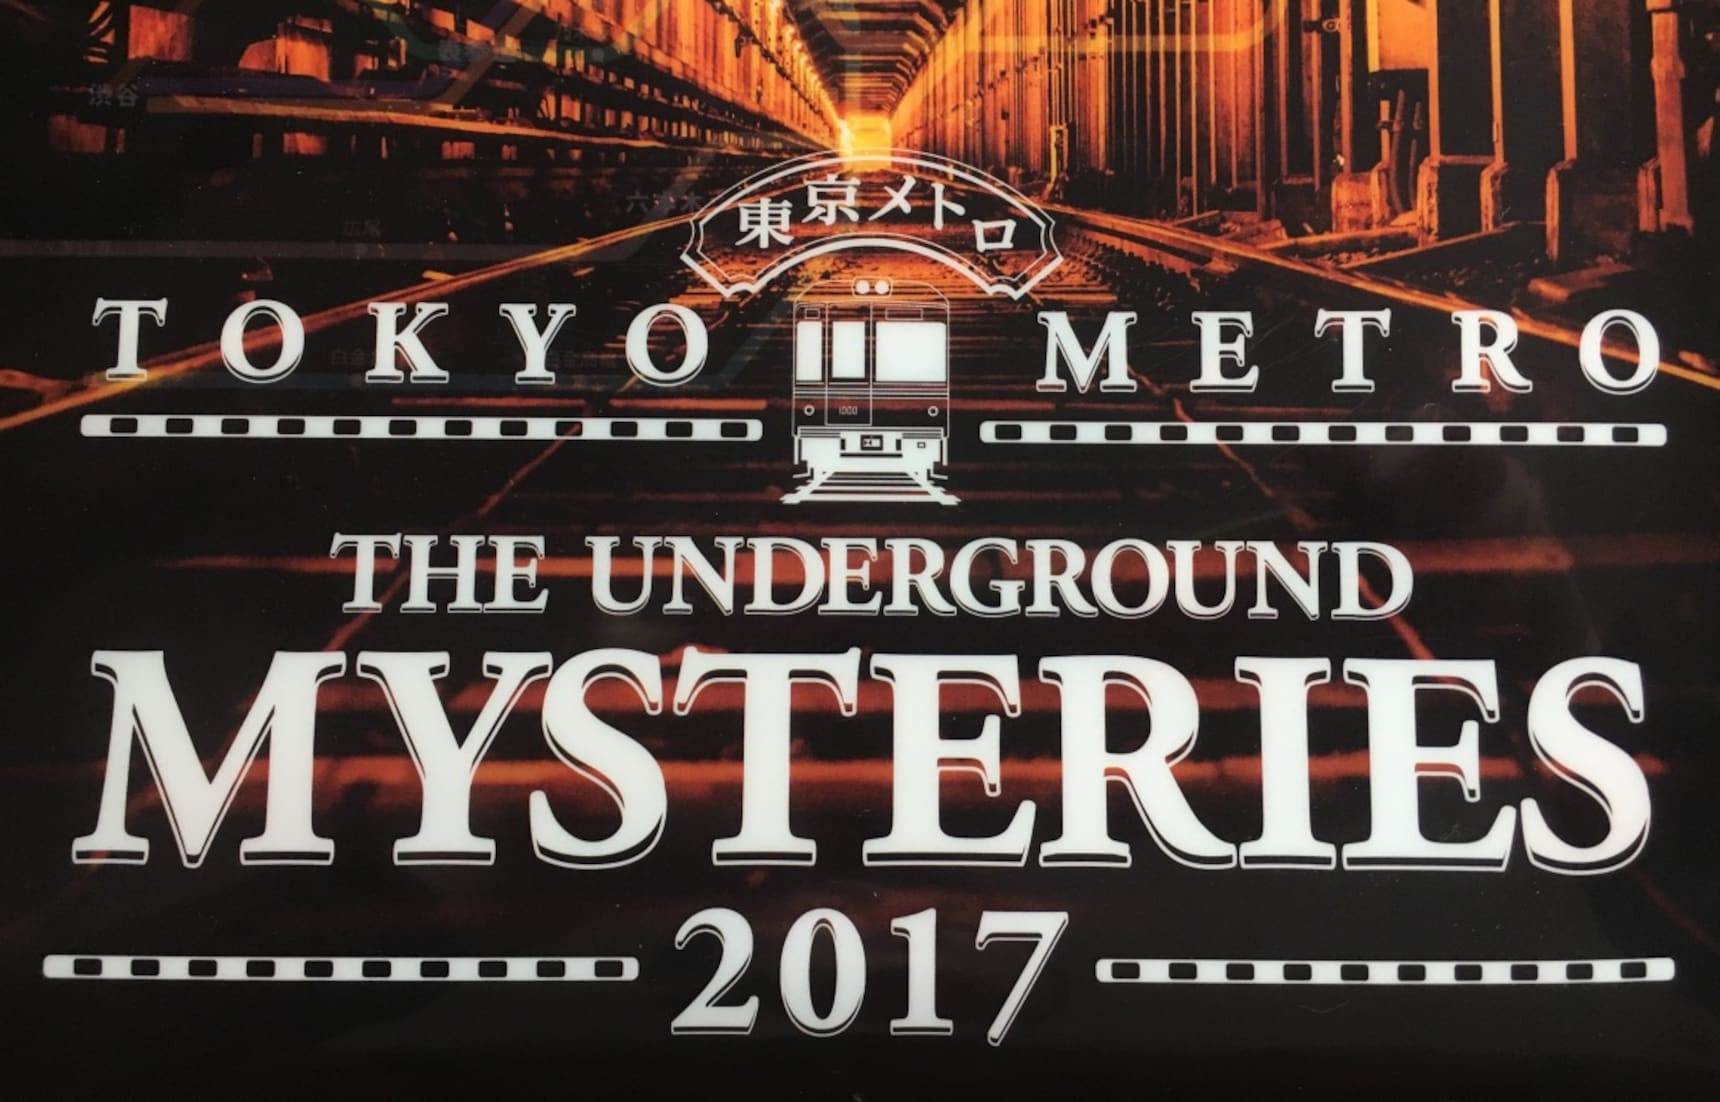 Can You Solve the Tokyo Metro Mystery?